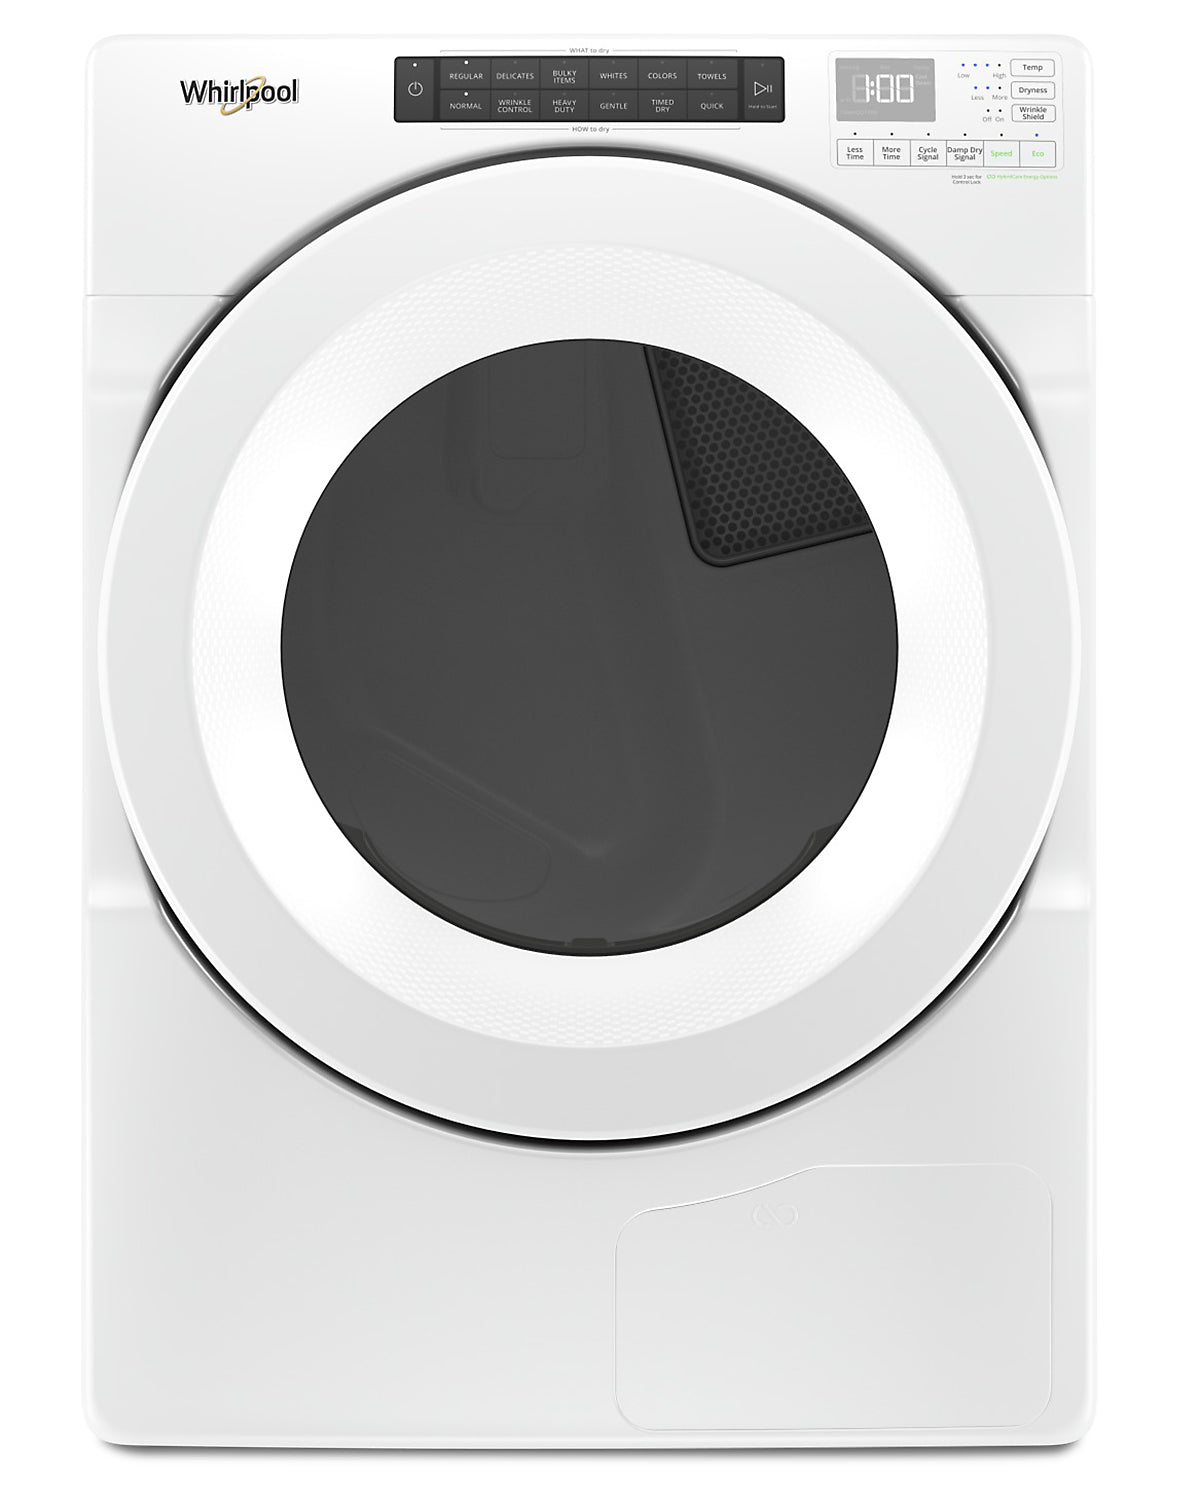 Whirlpool 7.4 Cu. Ft. Front Load Heat Pump Dryer